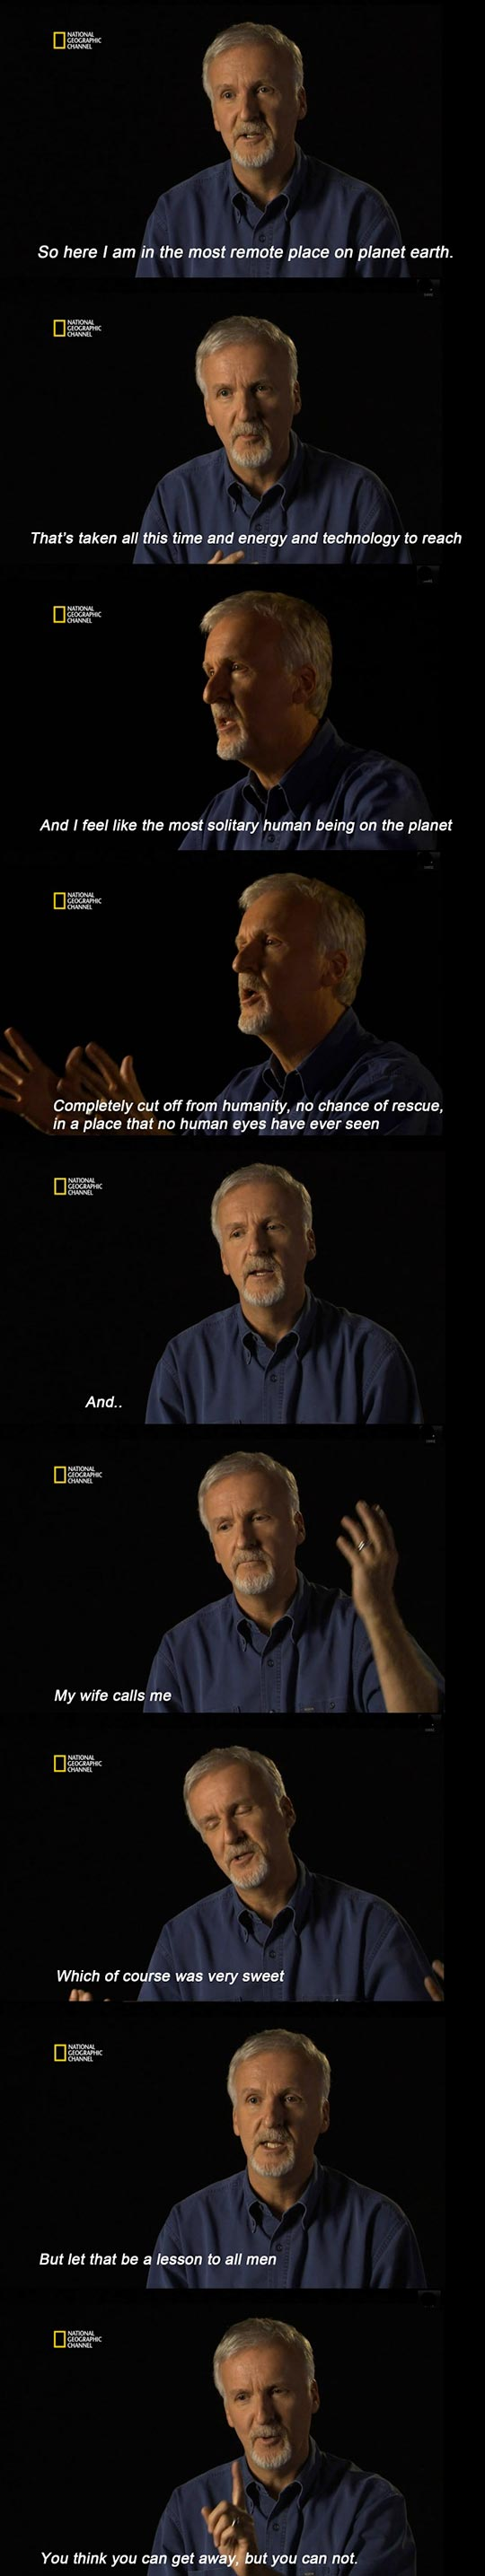 James Cameron's Hilarious Story